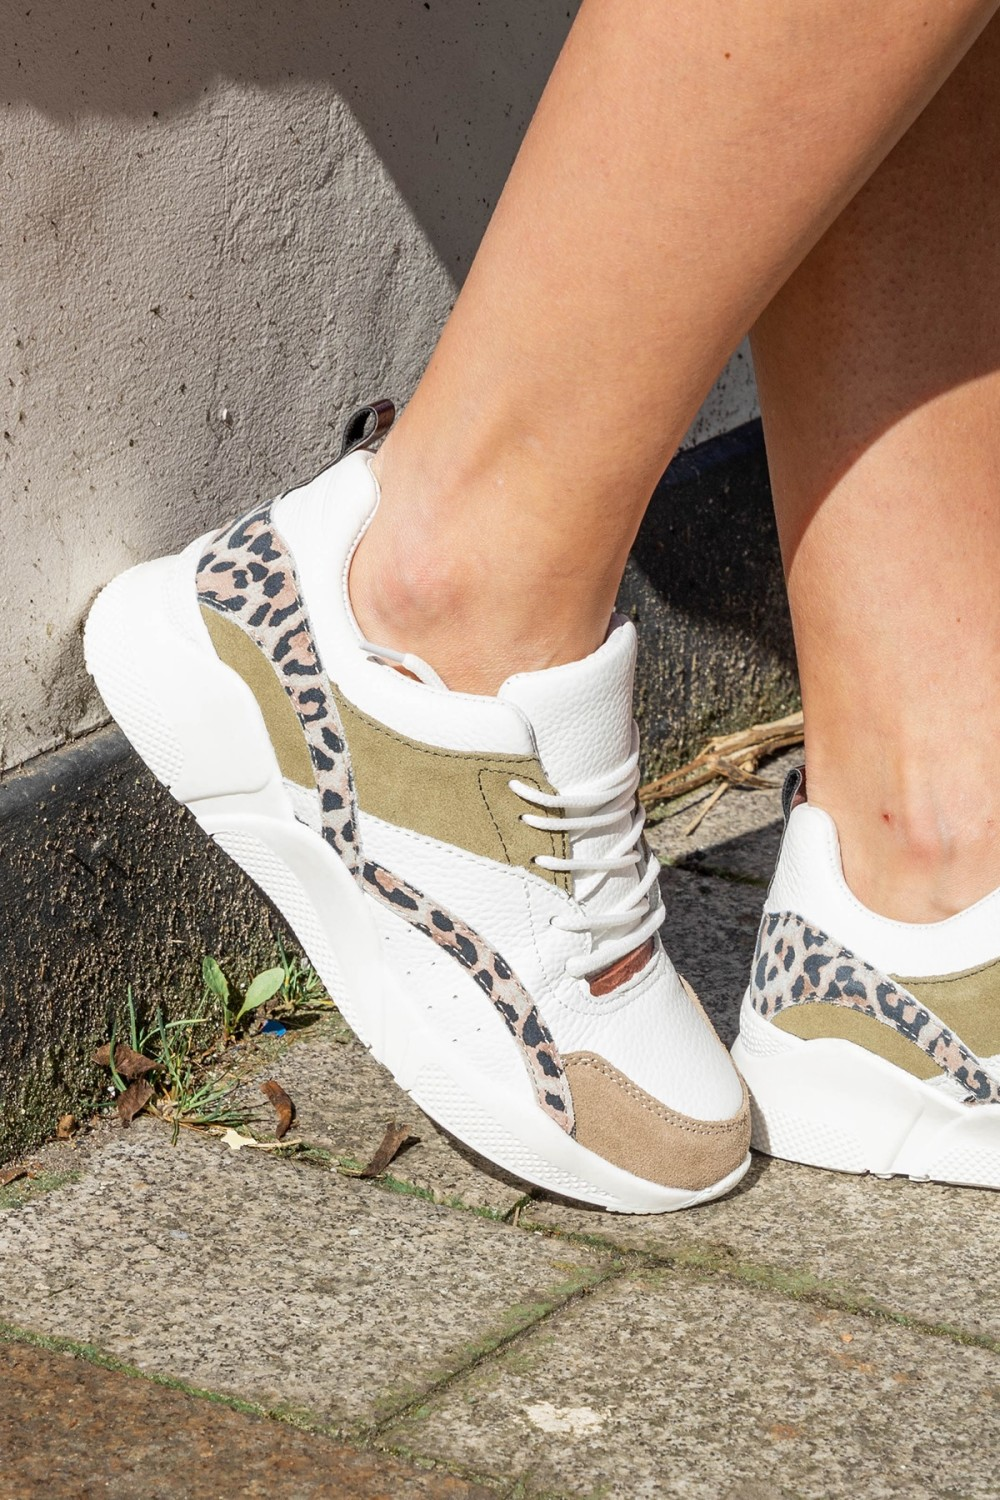 Shoecolate Lage sneaker Wit 8.10.02.127.41